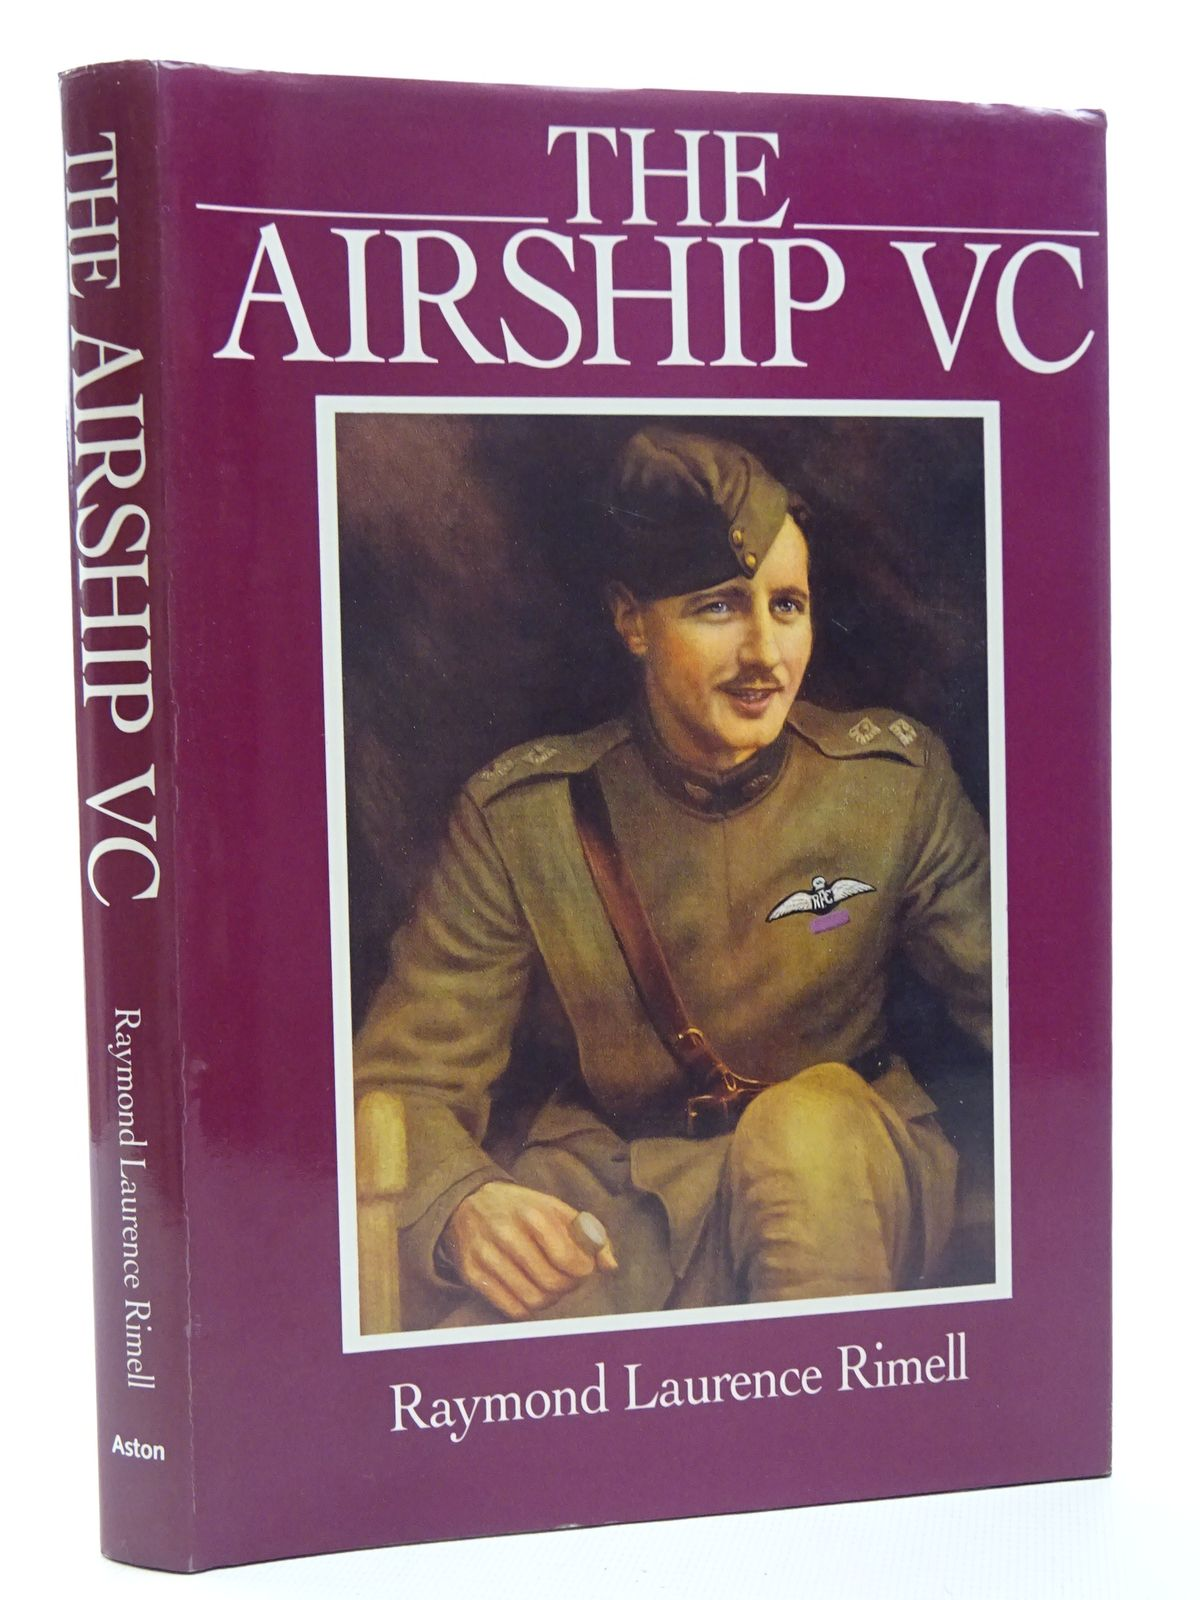 Photo of THE AIRSHIP VC THE LIFE OF CAPTAIN WILLIAM LEEFE ROBINSON written by Rimell, Raymond Laurence published by Aston Publications (STOCK CODE: 2124809)  for sale by Stella & Rose's Books